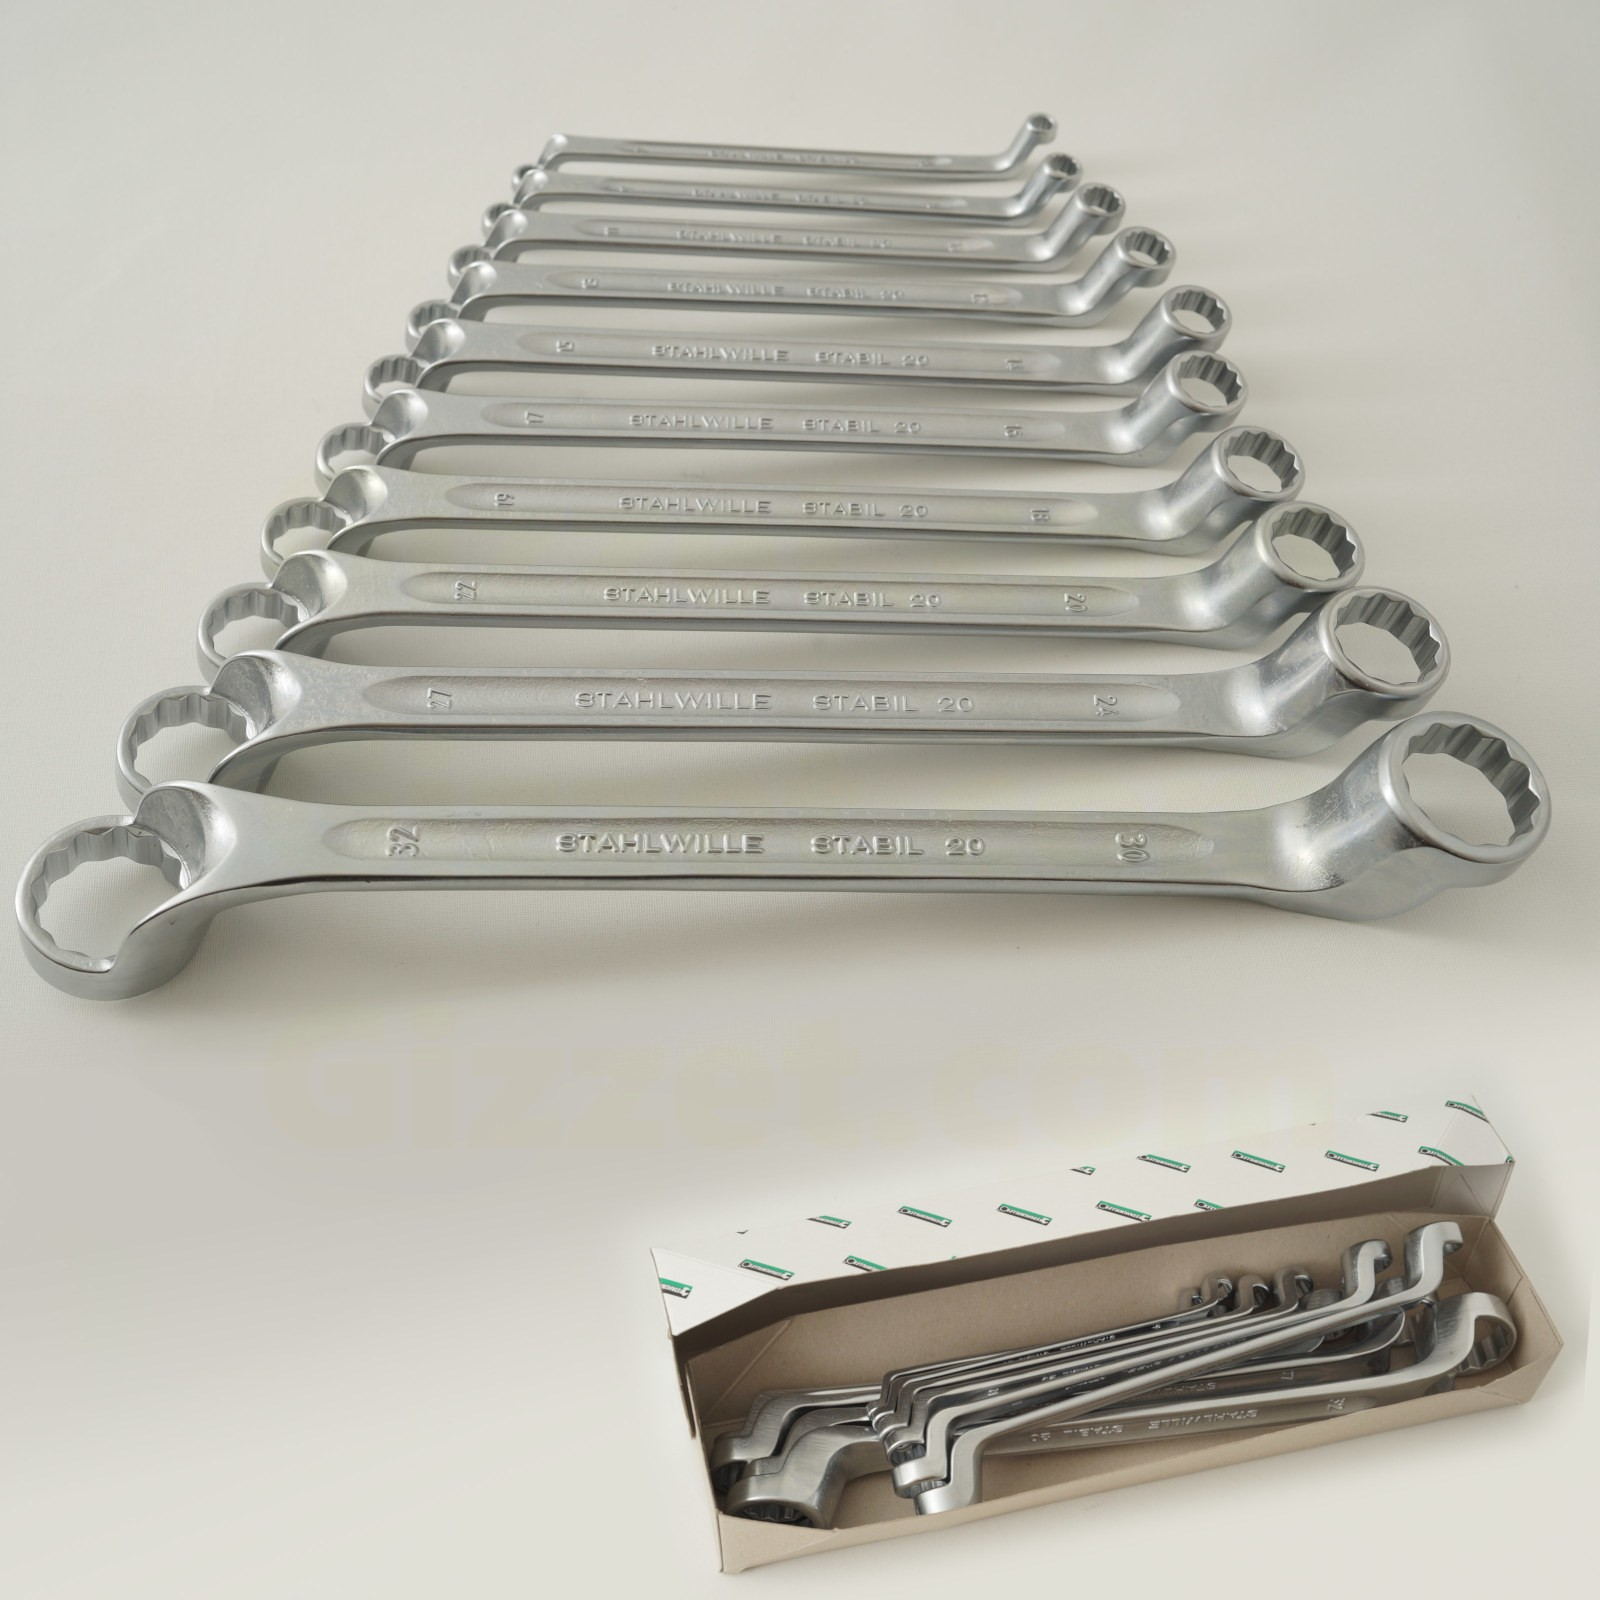 Stahlwille 13/17 Combination wrench set OPEN-BOX